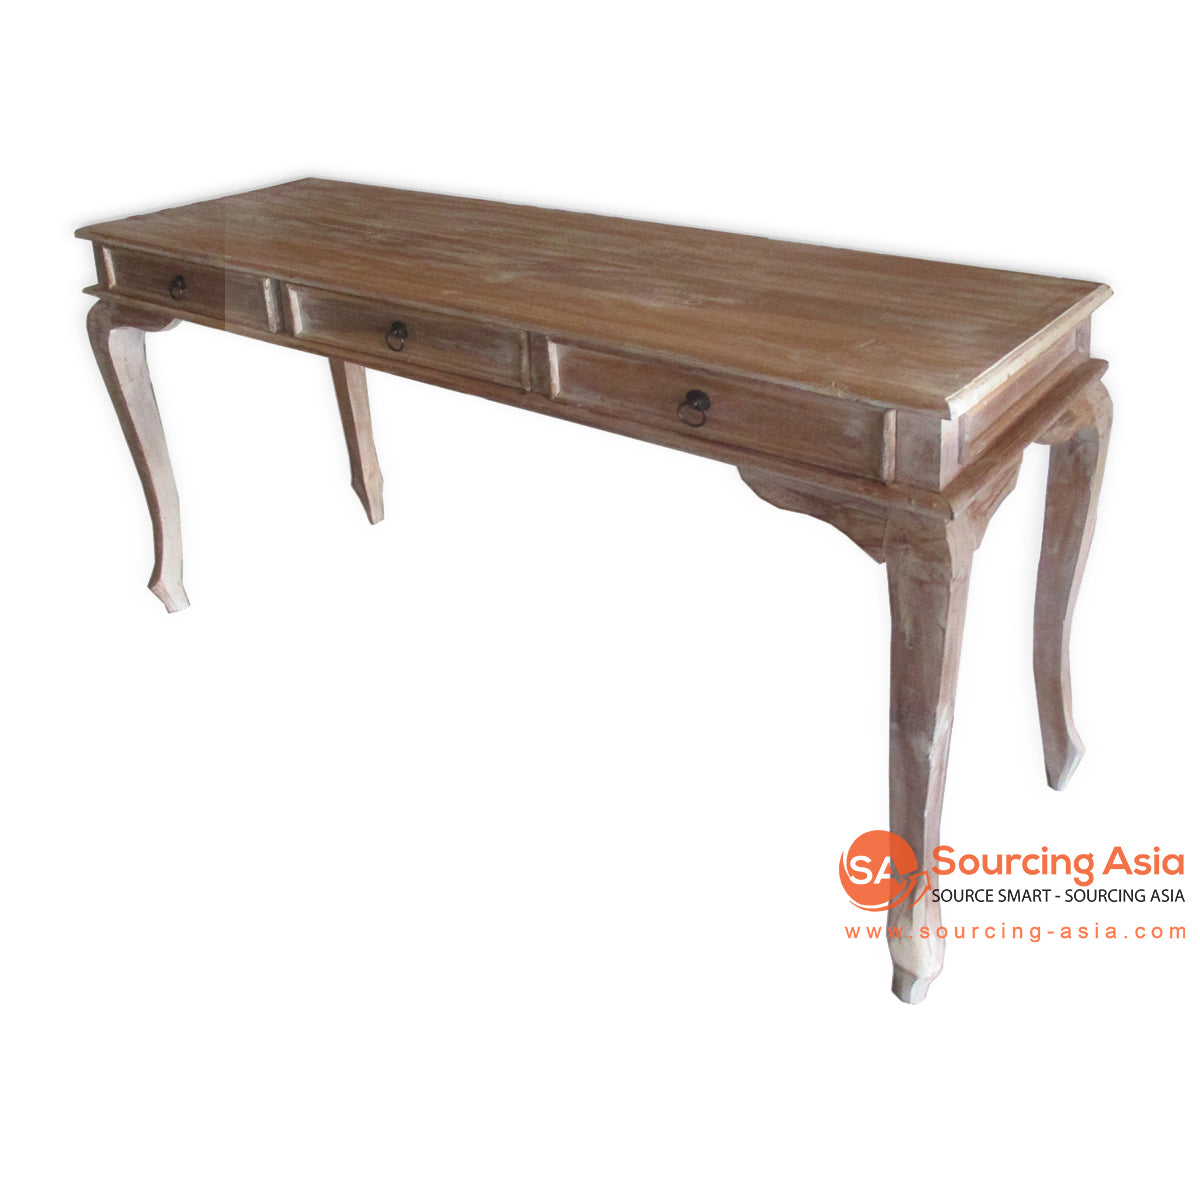 THE146 NATURAL WOODEN CONSOLE WITH 3 DRAWERS IN WHITEWASH FINISHES